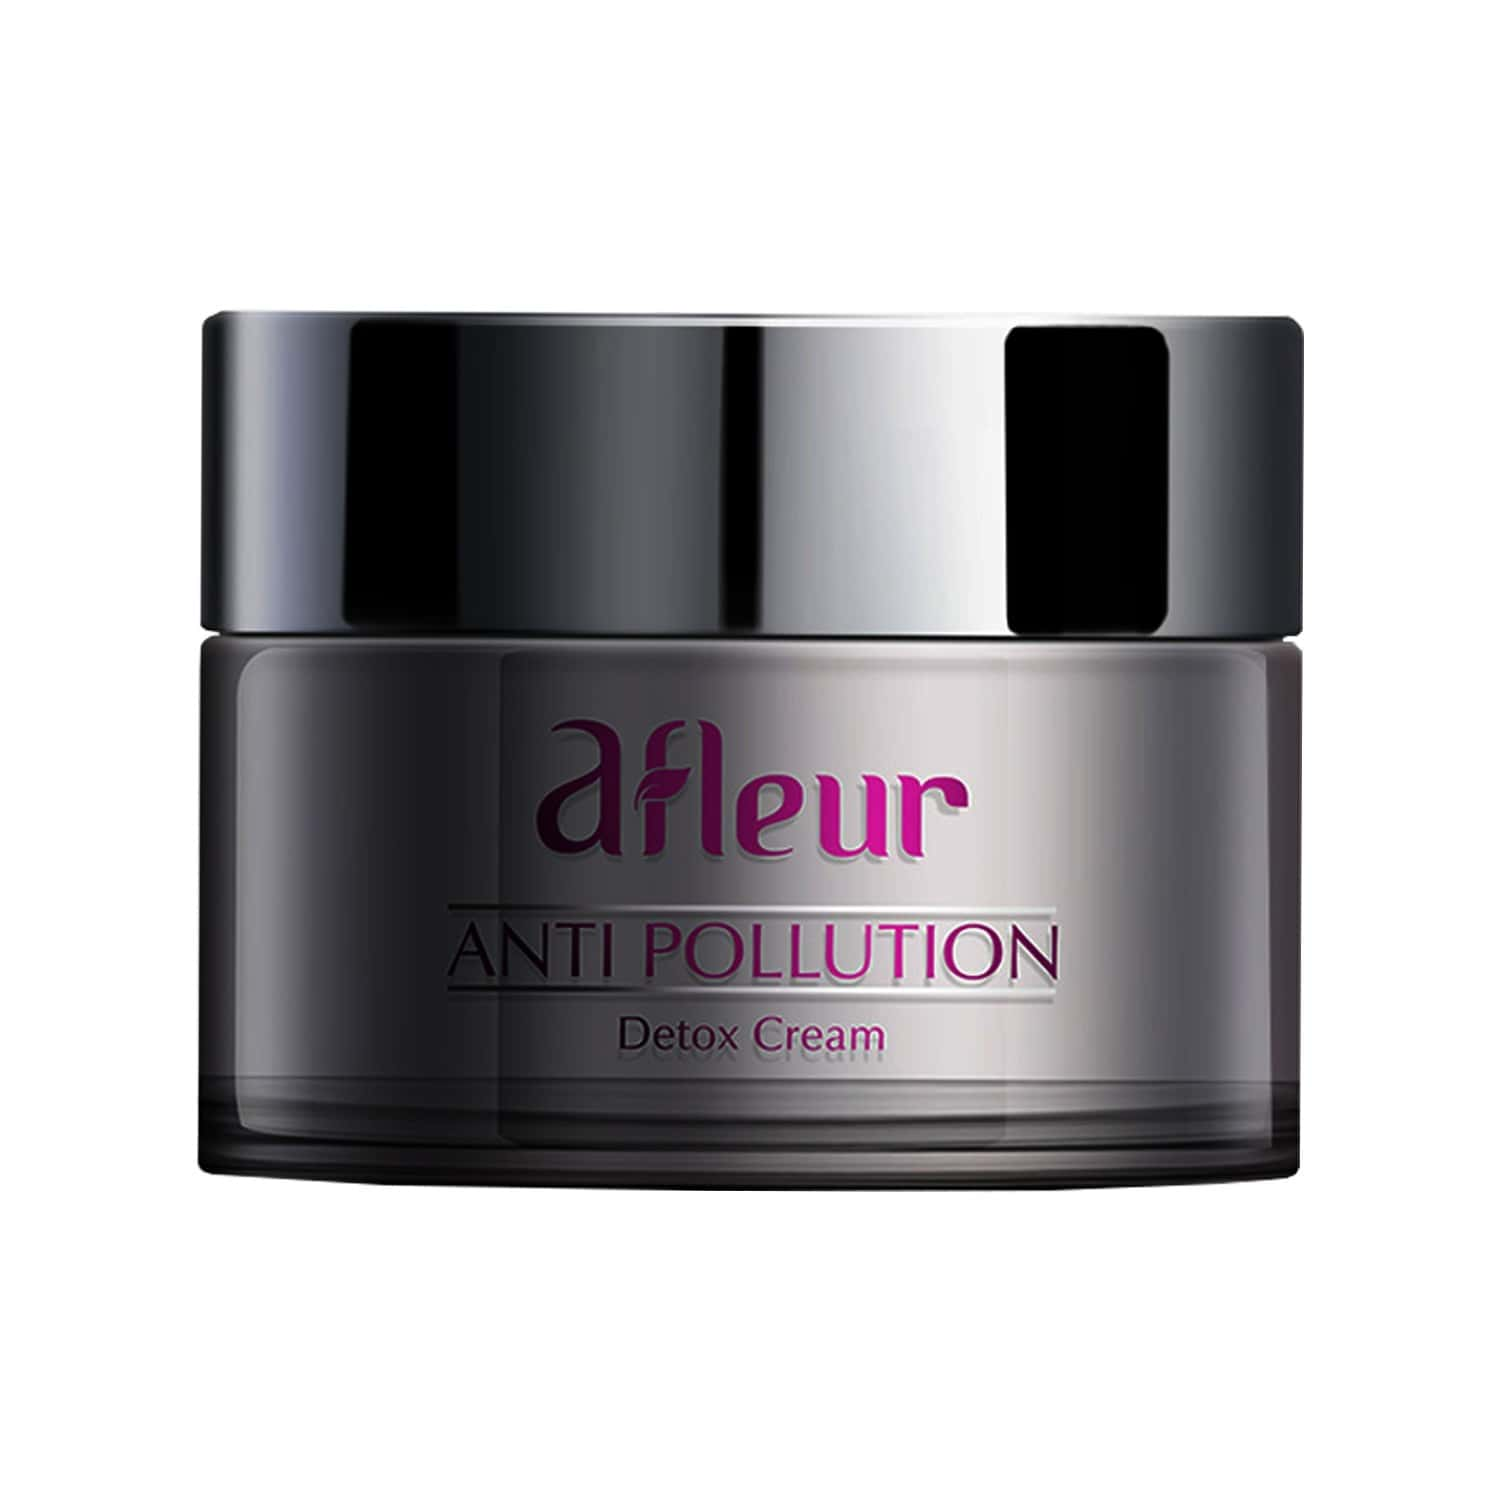 Green Cure Anti Pollution Detox Cream For Skin Protection Against Pollution, Uva & Uvb - 50gm